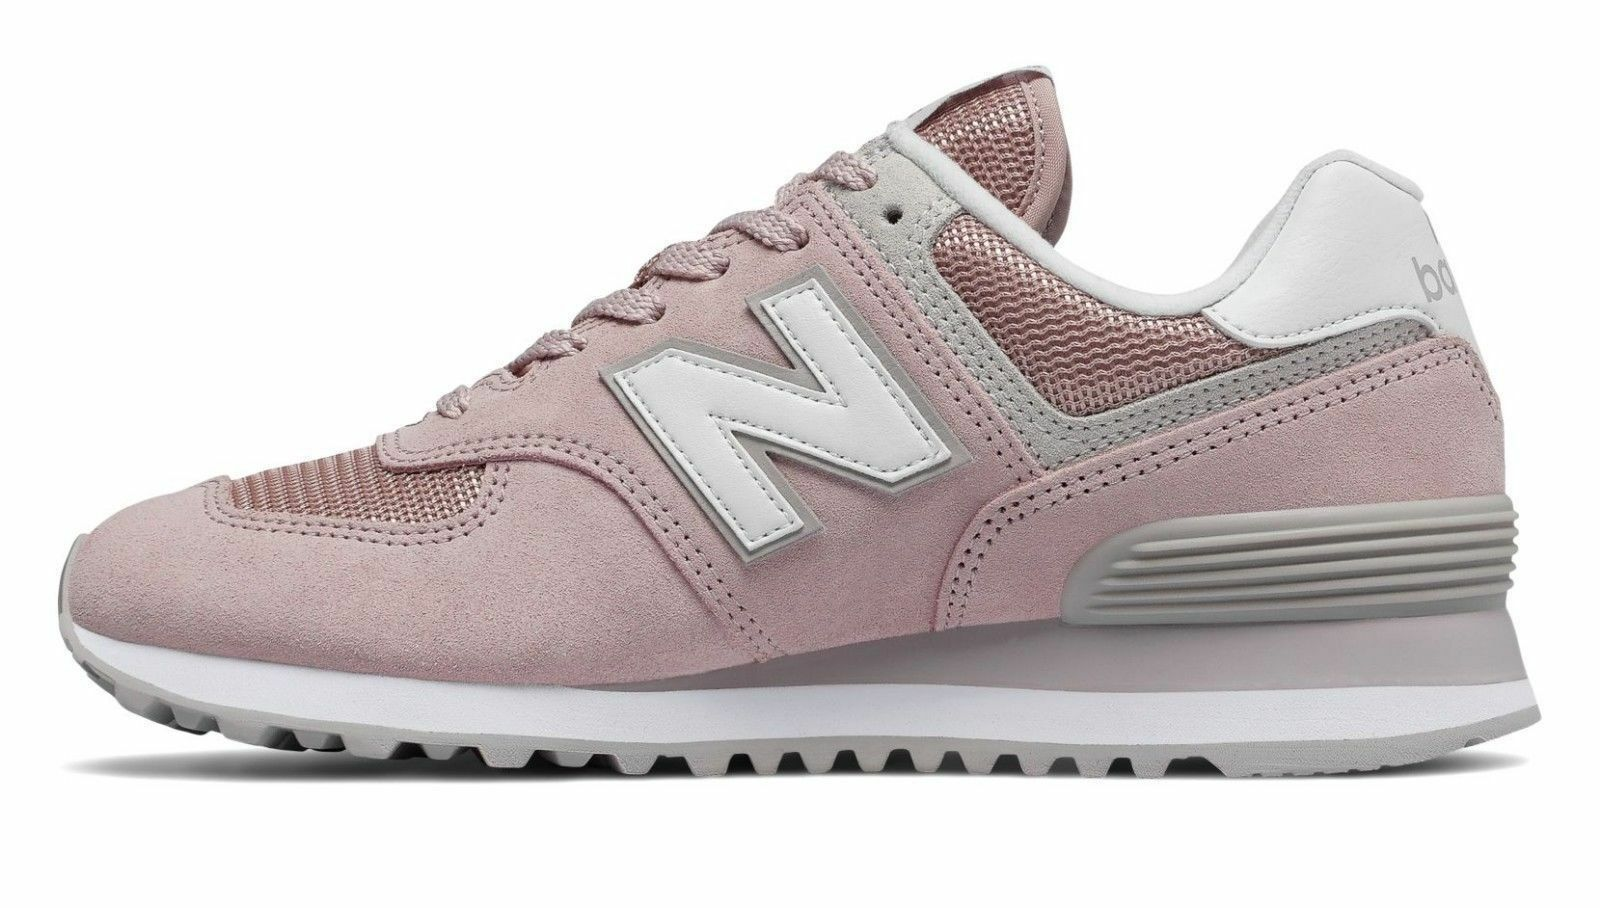 New Balance WL574ESP 574 Faded Rose Pink Lifestyle Women Sneakers image 3